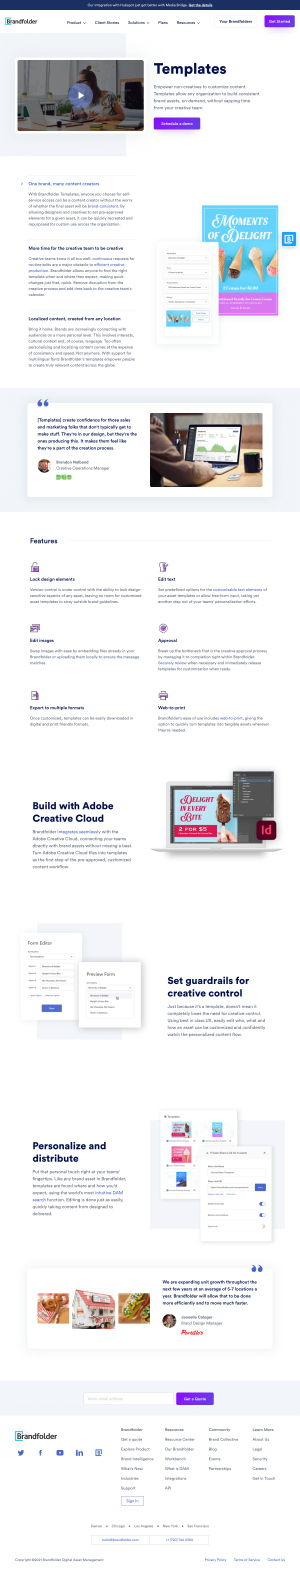 Brandfolder – Features page 2